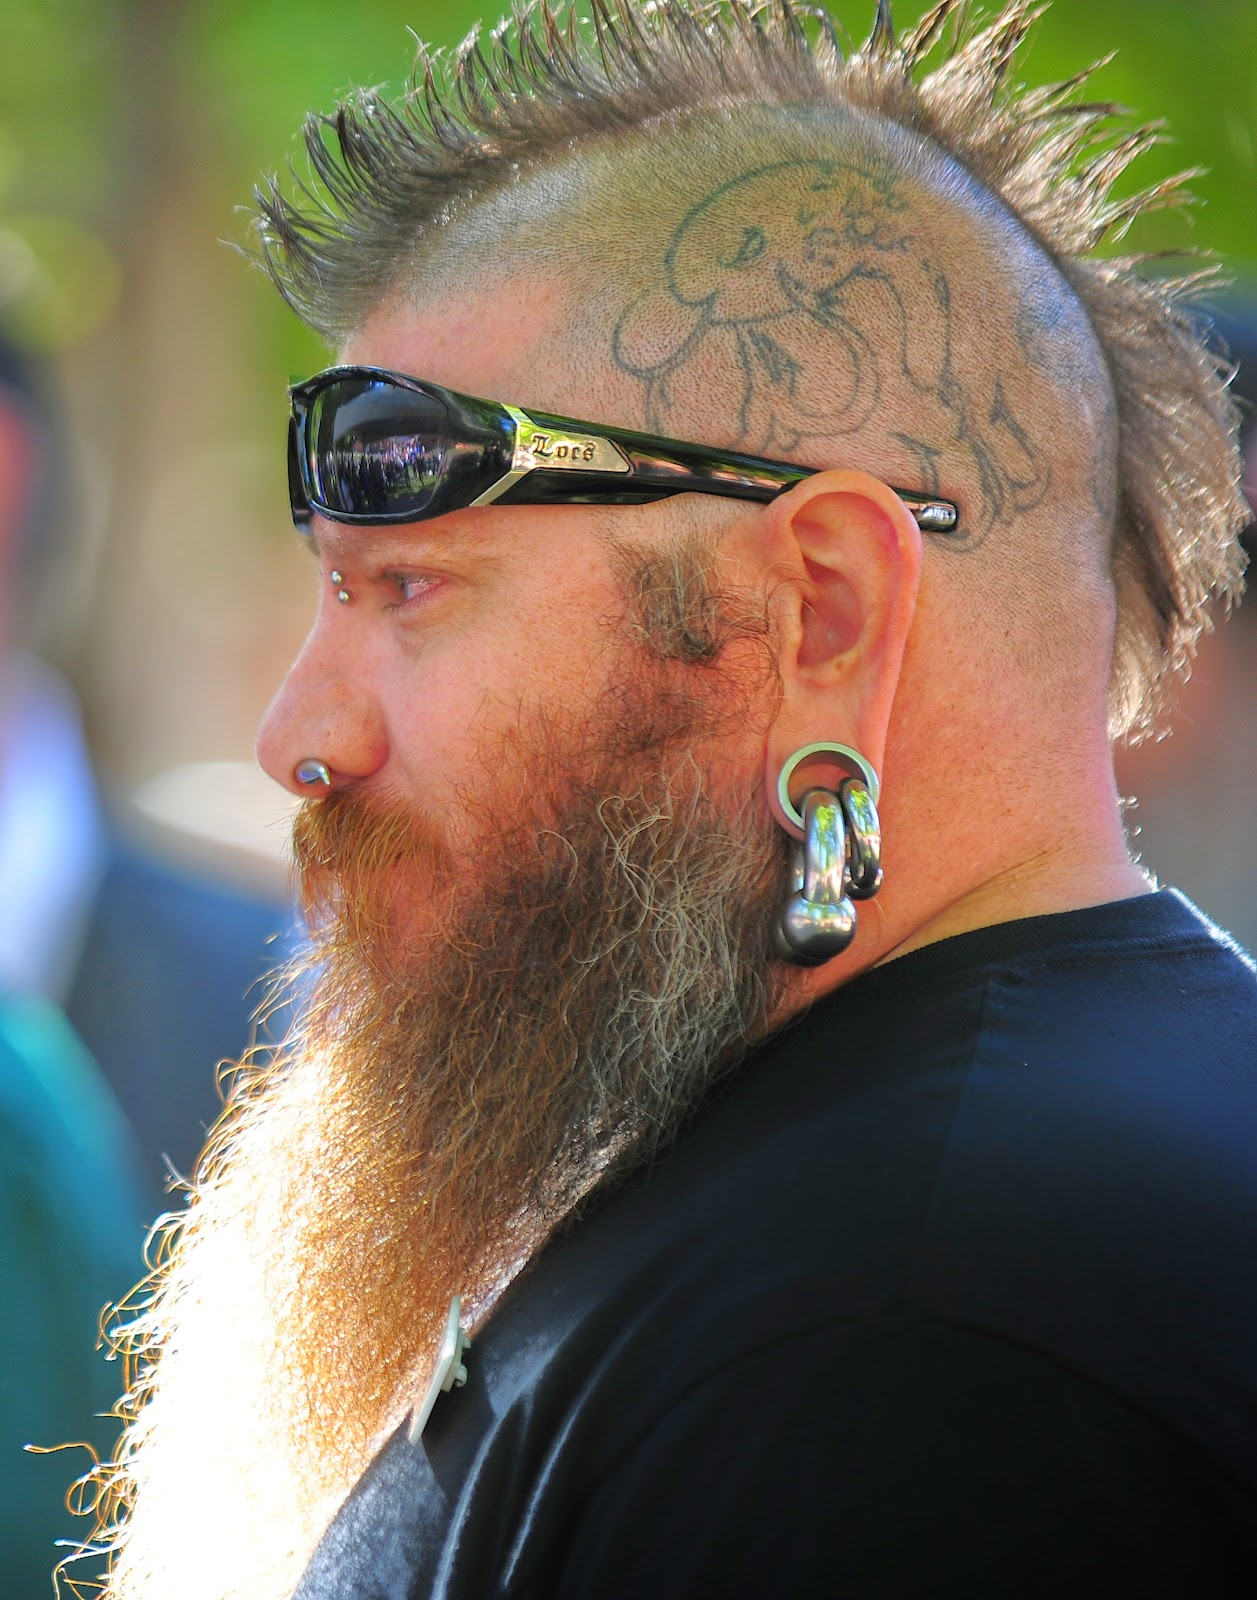 National Beard & Moustache Championships in Pictures